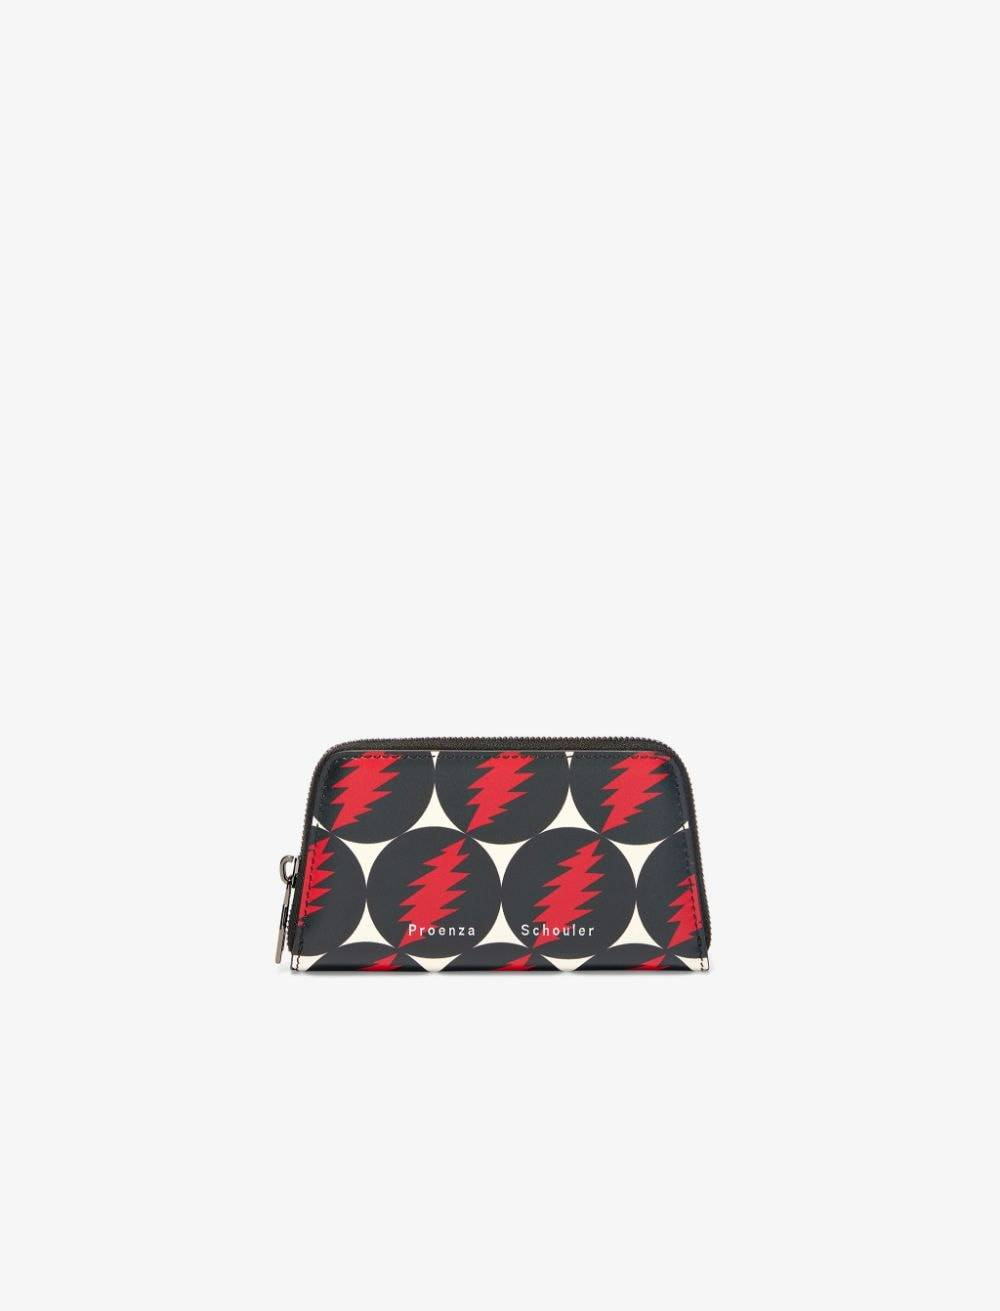 Proenza Schouler x Grateful Dead trapeze compact wallet grateful dead print/multicolour One Size